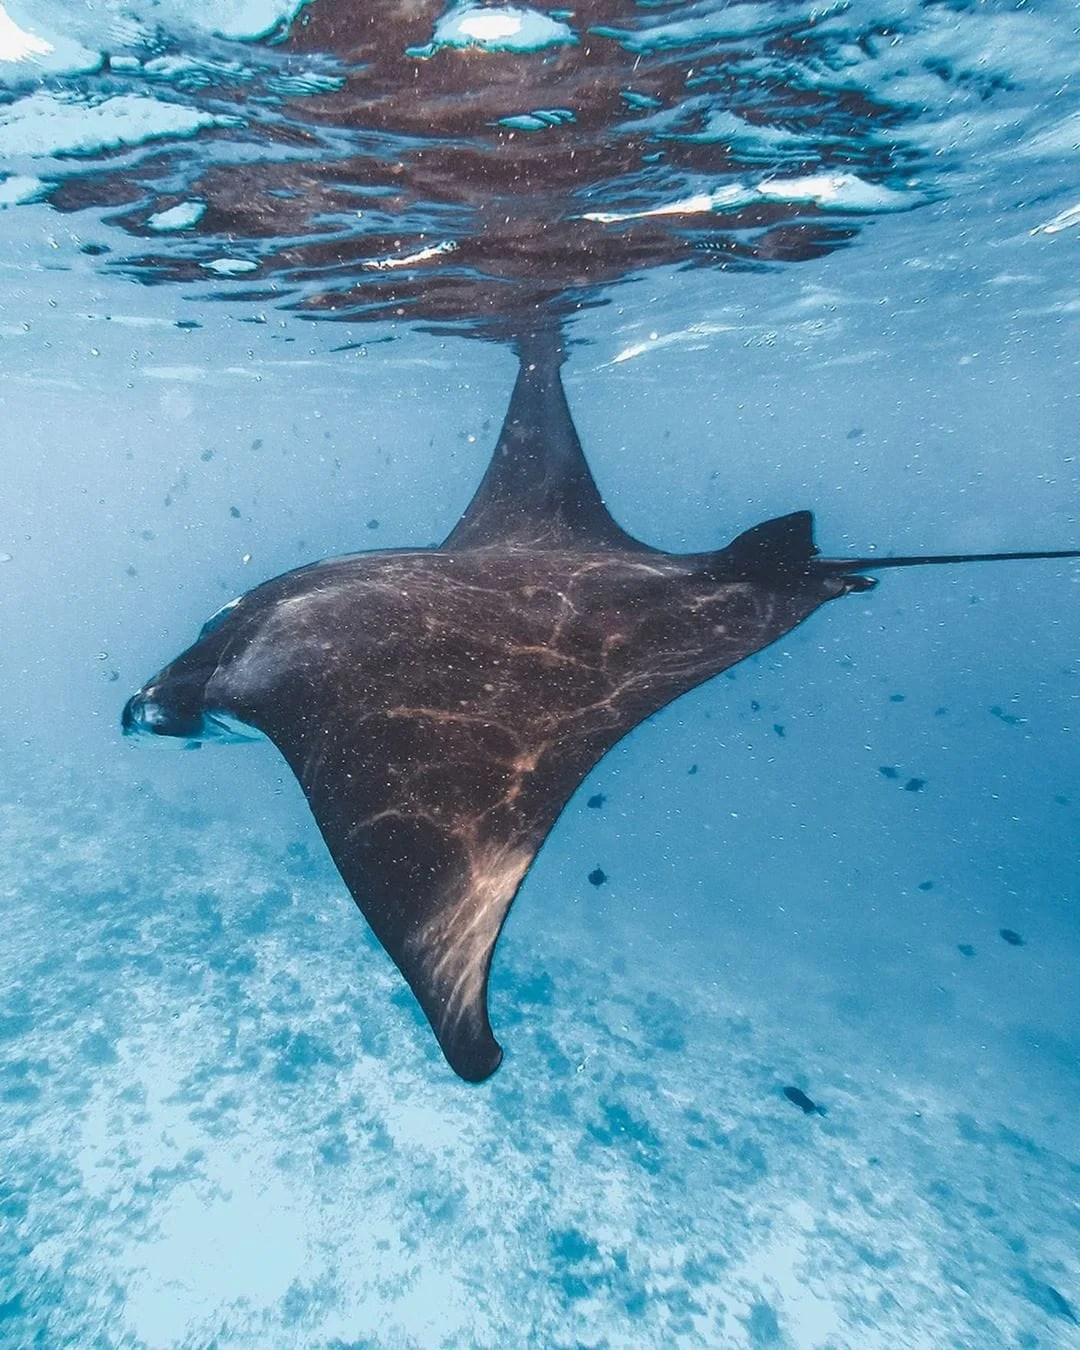 Watching Manta Rays in Maldives